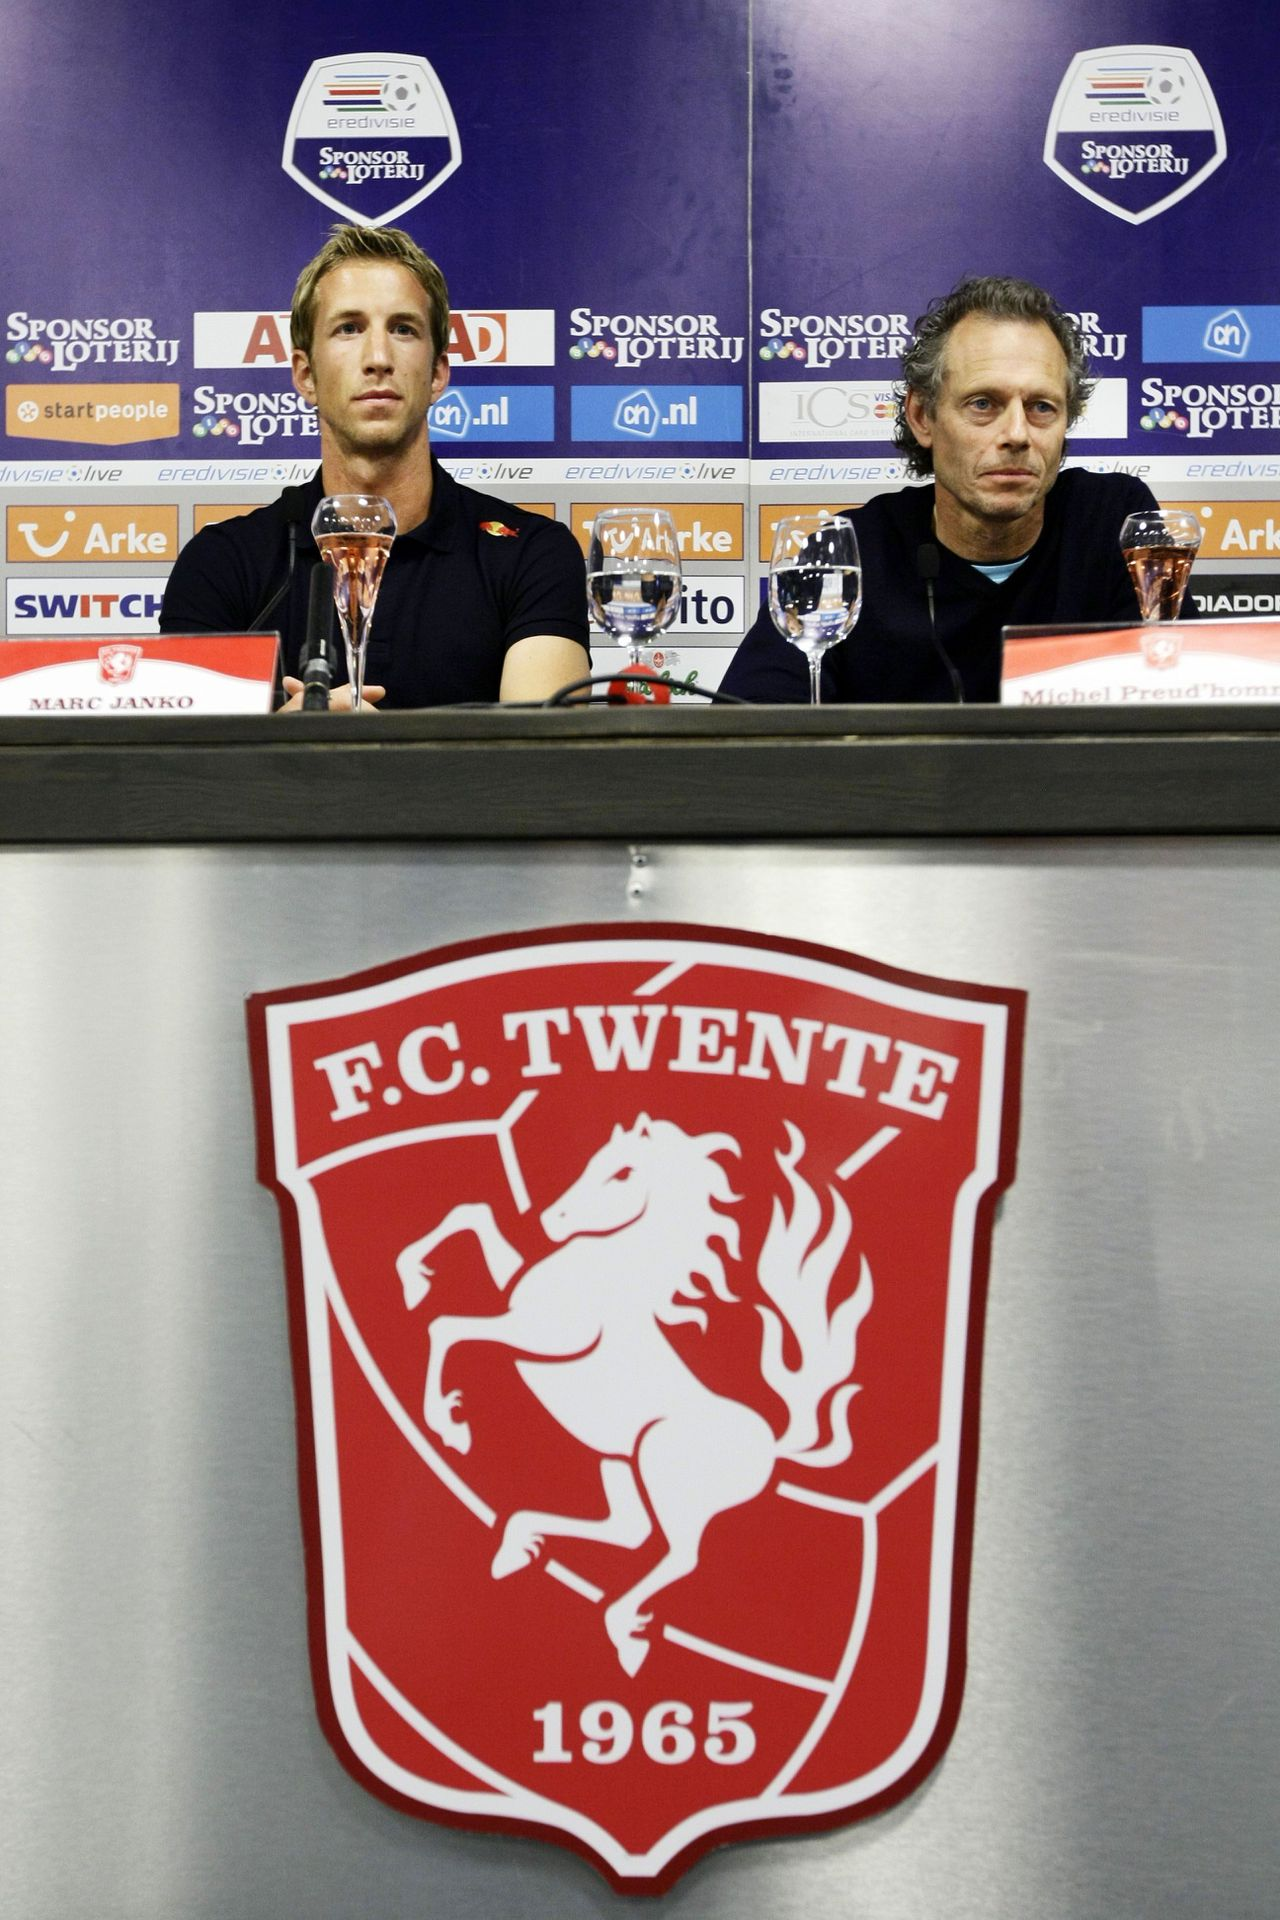 Enschede vs. Milaan Austrian soccer player Marc Janko (L) and his new trainer Michel Preud'homme (R) attend a press conference in the stadium of FC Twente in Enschede, on June 21, 2010. Striker Marc Janko will become Austria's most expensive footballer when he completes a seven million euro move from champions Salzburg to Dutch champions FC Twente. AFP PHOTO / ANP / VINCENT JANNINK - netherlands out - belgium out